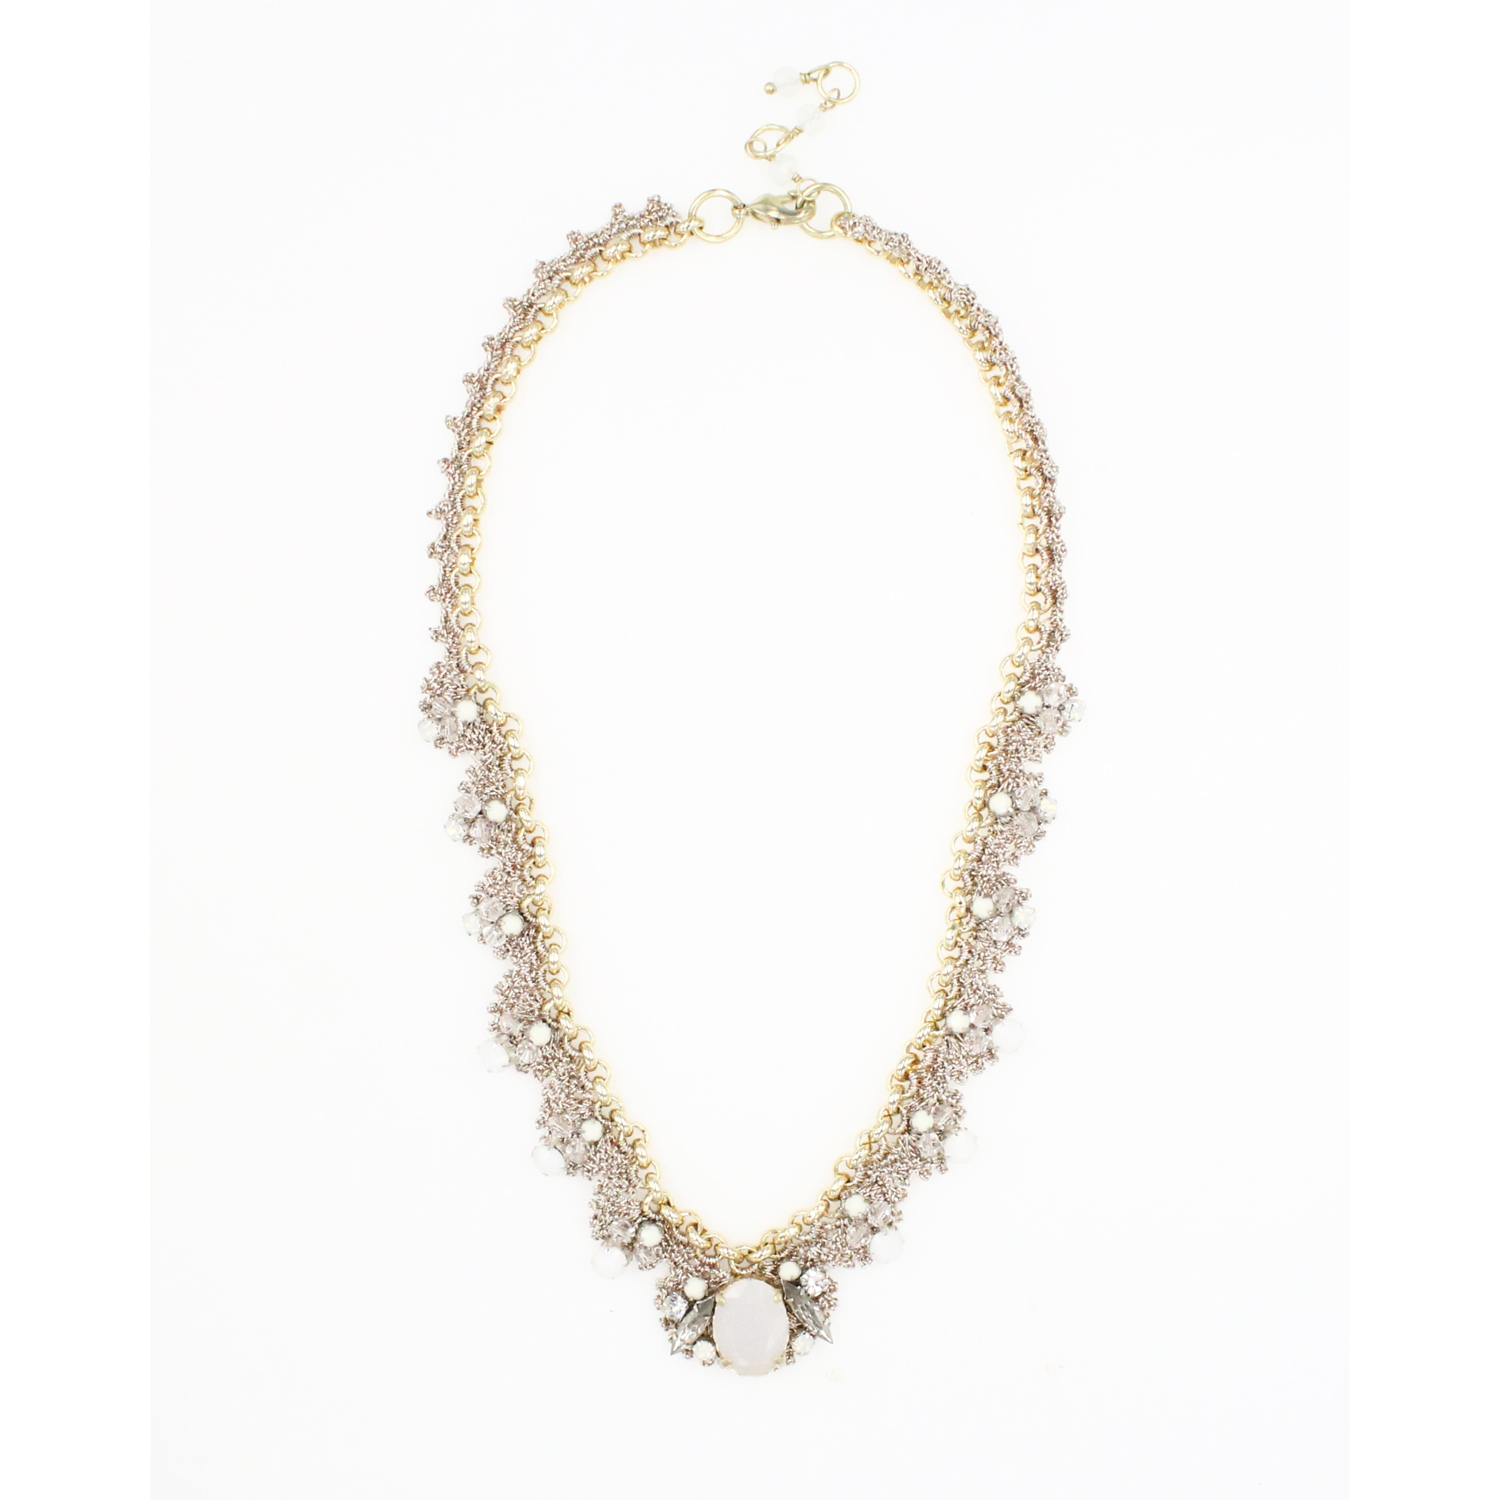 Frangipani Bejewelled Crochet Petal Necklace - Opal Clear